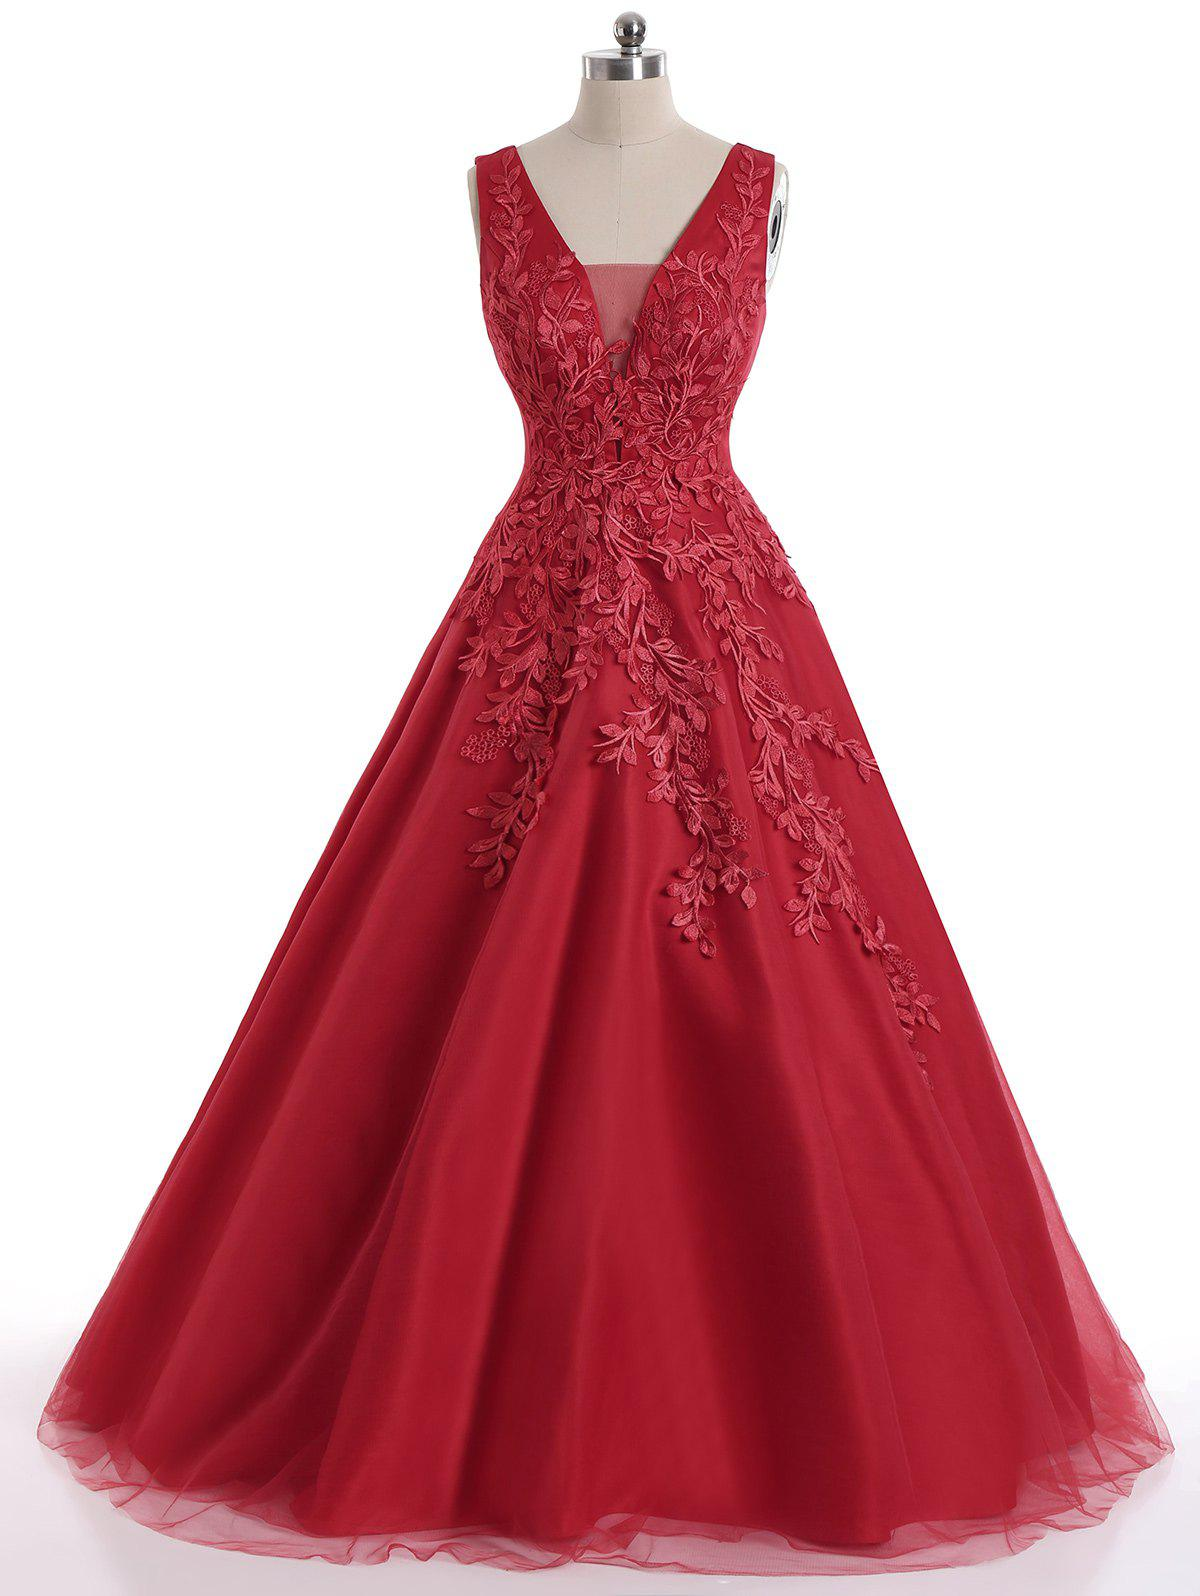 Sleeveless Floral Applique Mesh Maxi Evening DressWOMEN<br><br>Size: 2XL; Color: RED; Style: A Line; Occasion: Bridesmaid,Cocktail &amp; Party,Formal,Wedding; Material: Cotton,Polyester; Dresses Length: Floor-Length; Neckline: Square Collar; Sleeve Length: Sleeveless; Embellishment: Appliques,Mesh; Pattern Type: Solid Color; With Belt: No; Season: Fall,Spring,Summer; Weight: 1.0500kg; Package Contents: 1 x Dress;